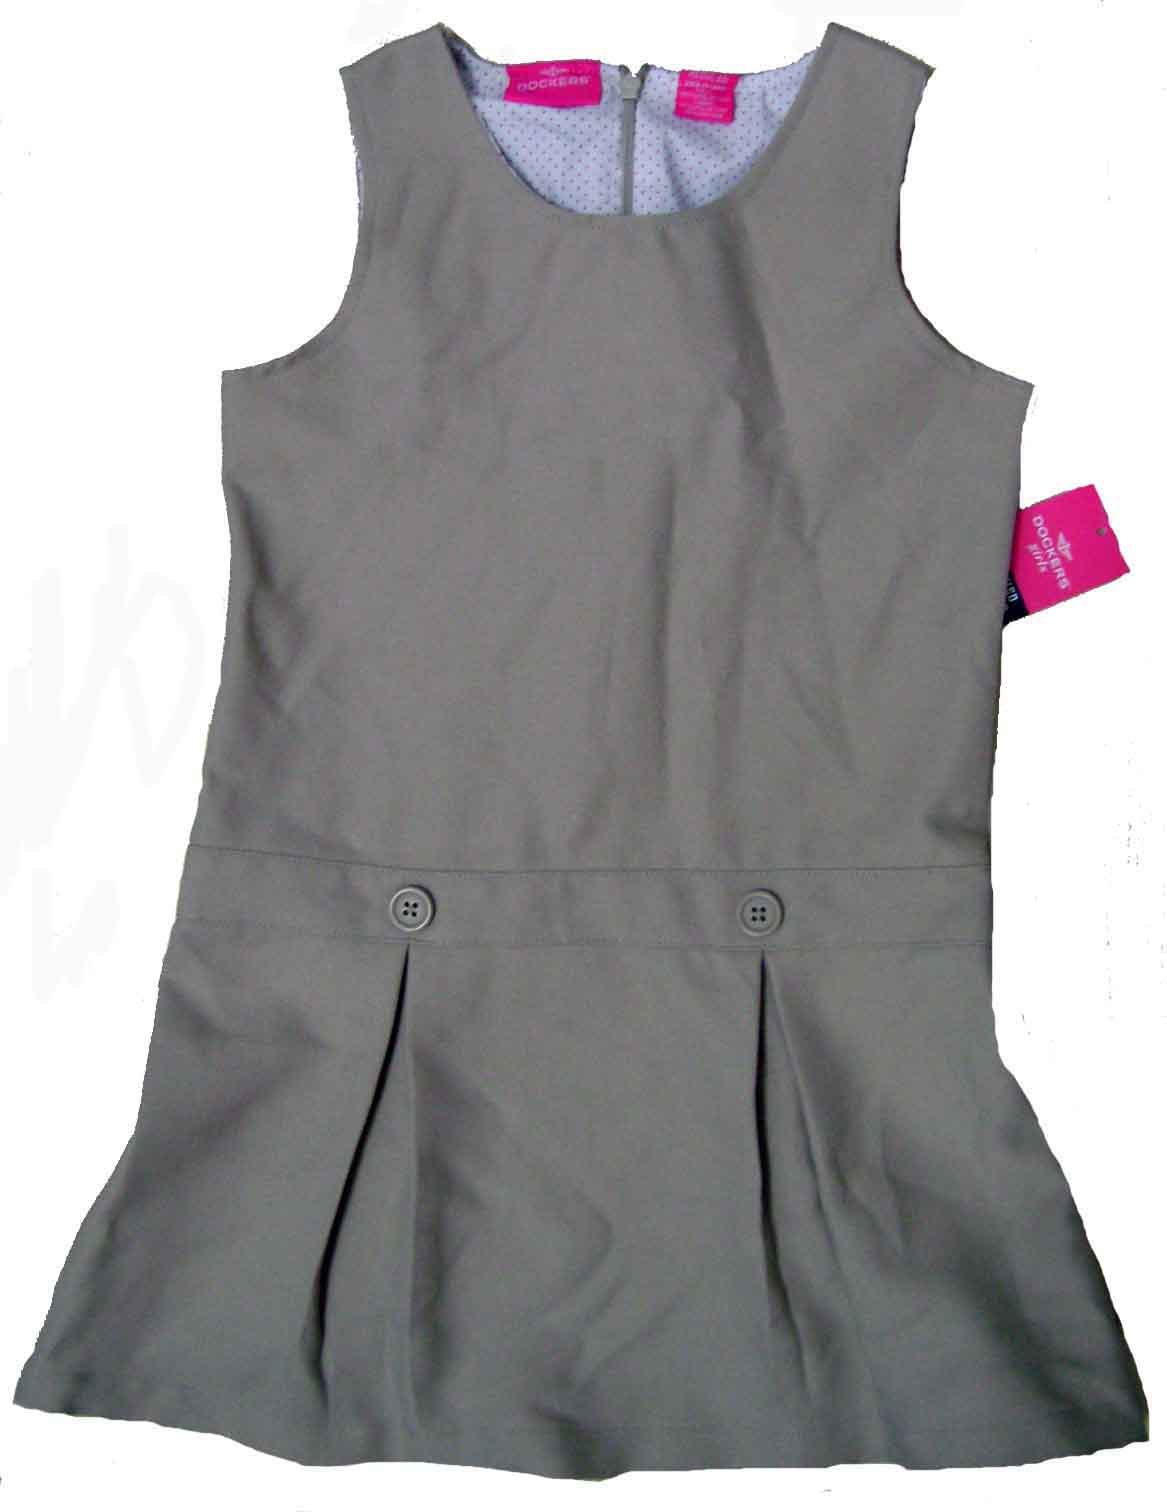 Office Boy Uniform http://www.made-in-china.com/showroom/cnuniform/product-detailreaEVoTcbKky/China-Girls-School-Uniform-Dress-Twill-3.html